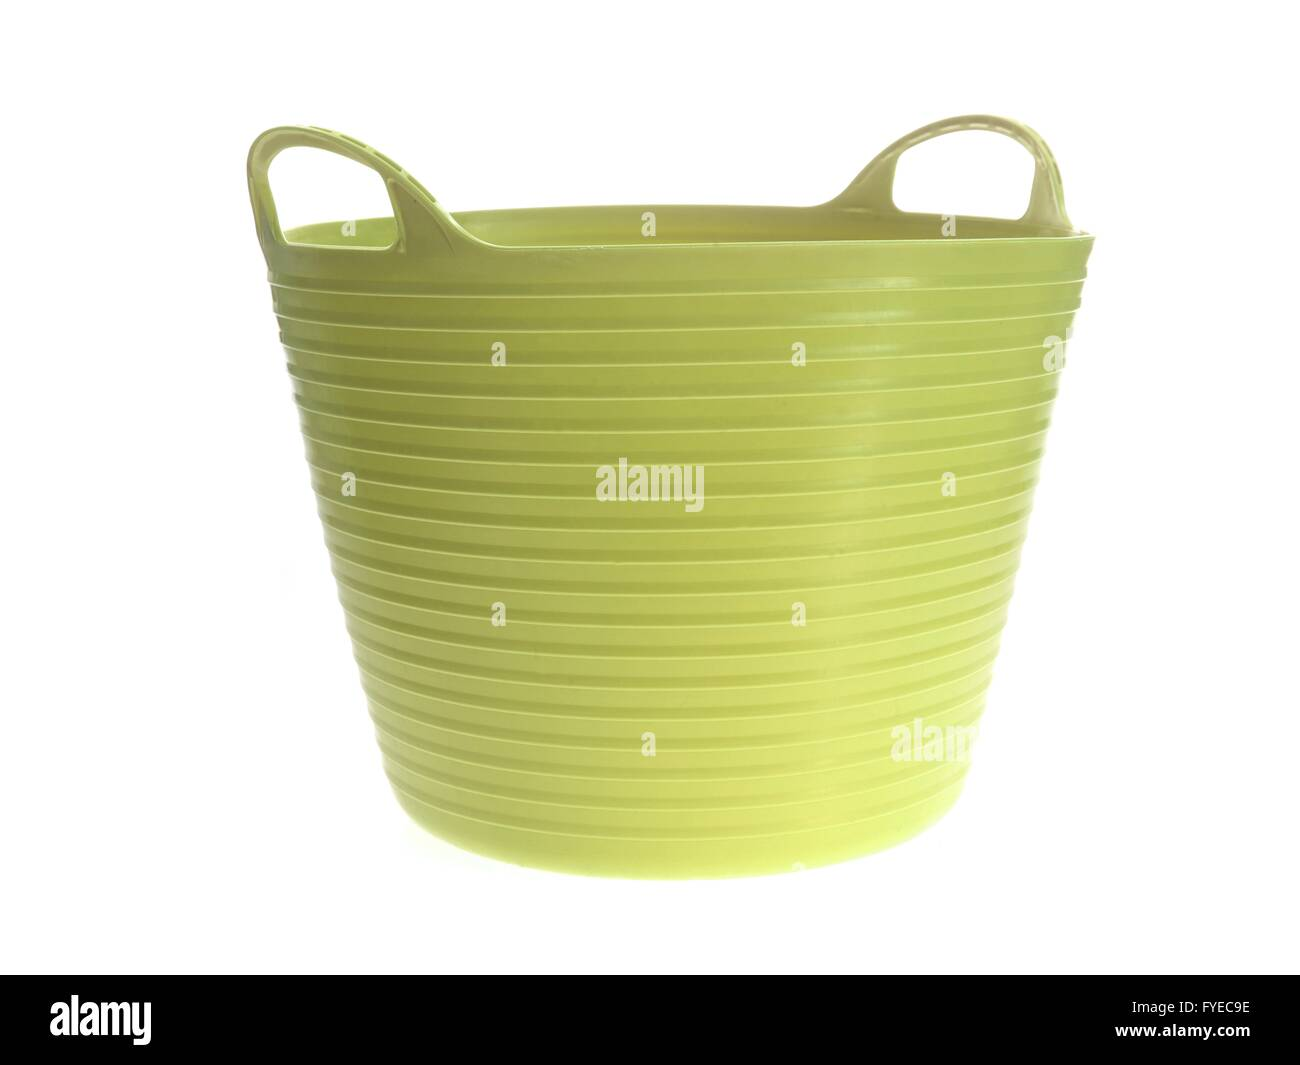 A cleaning bucket isolated against a white background - Stock Image